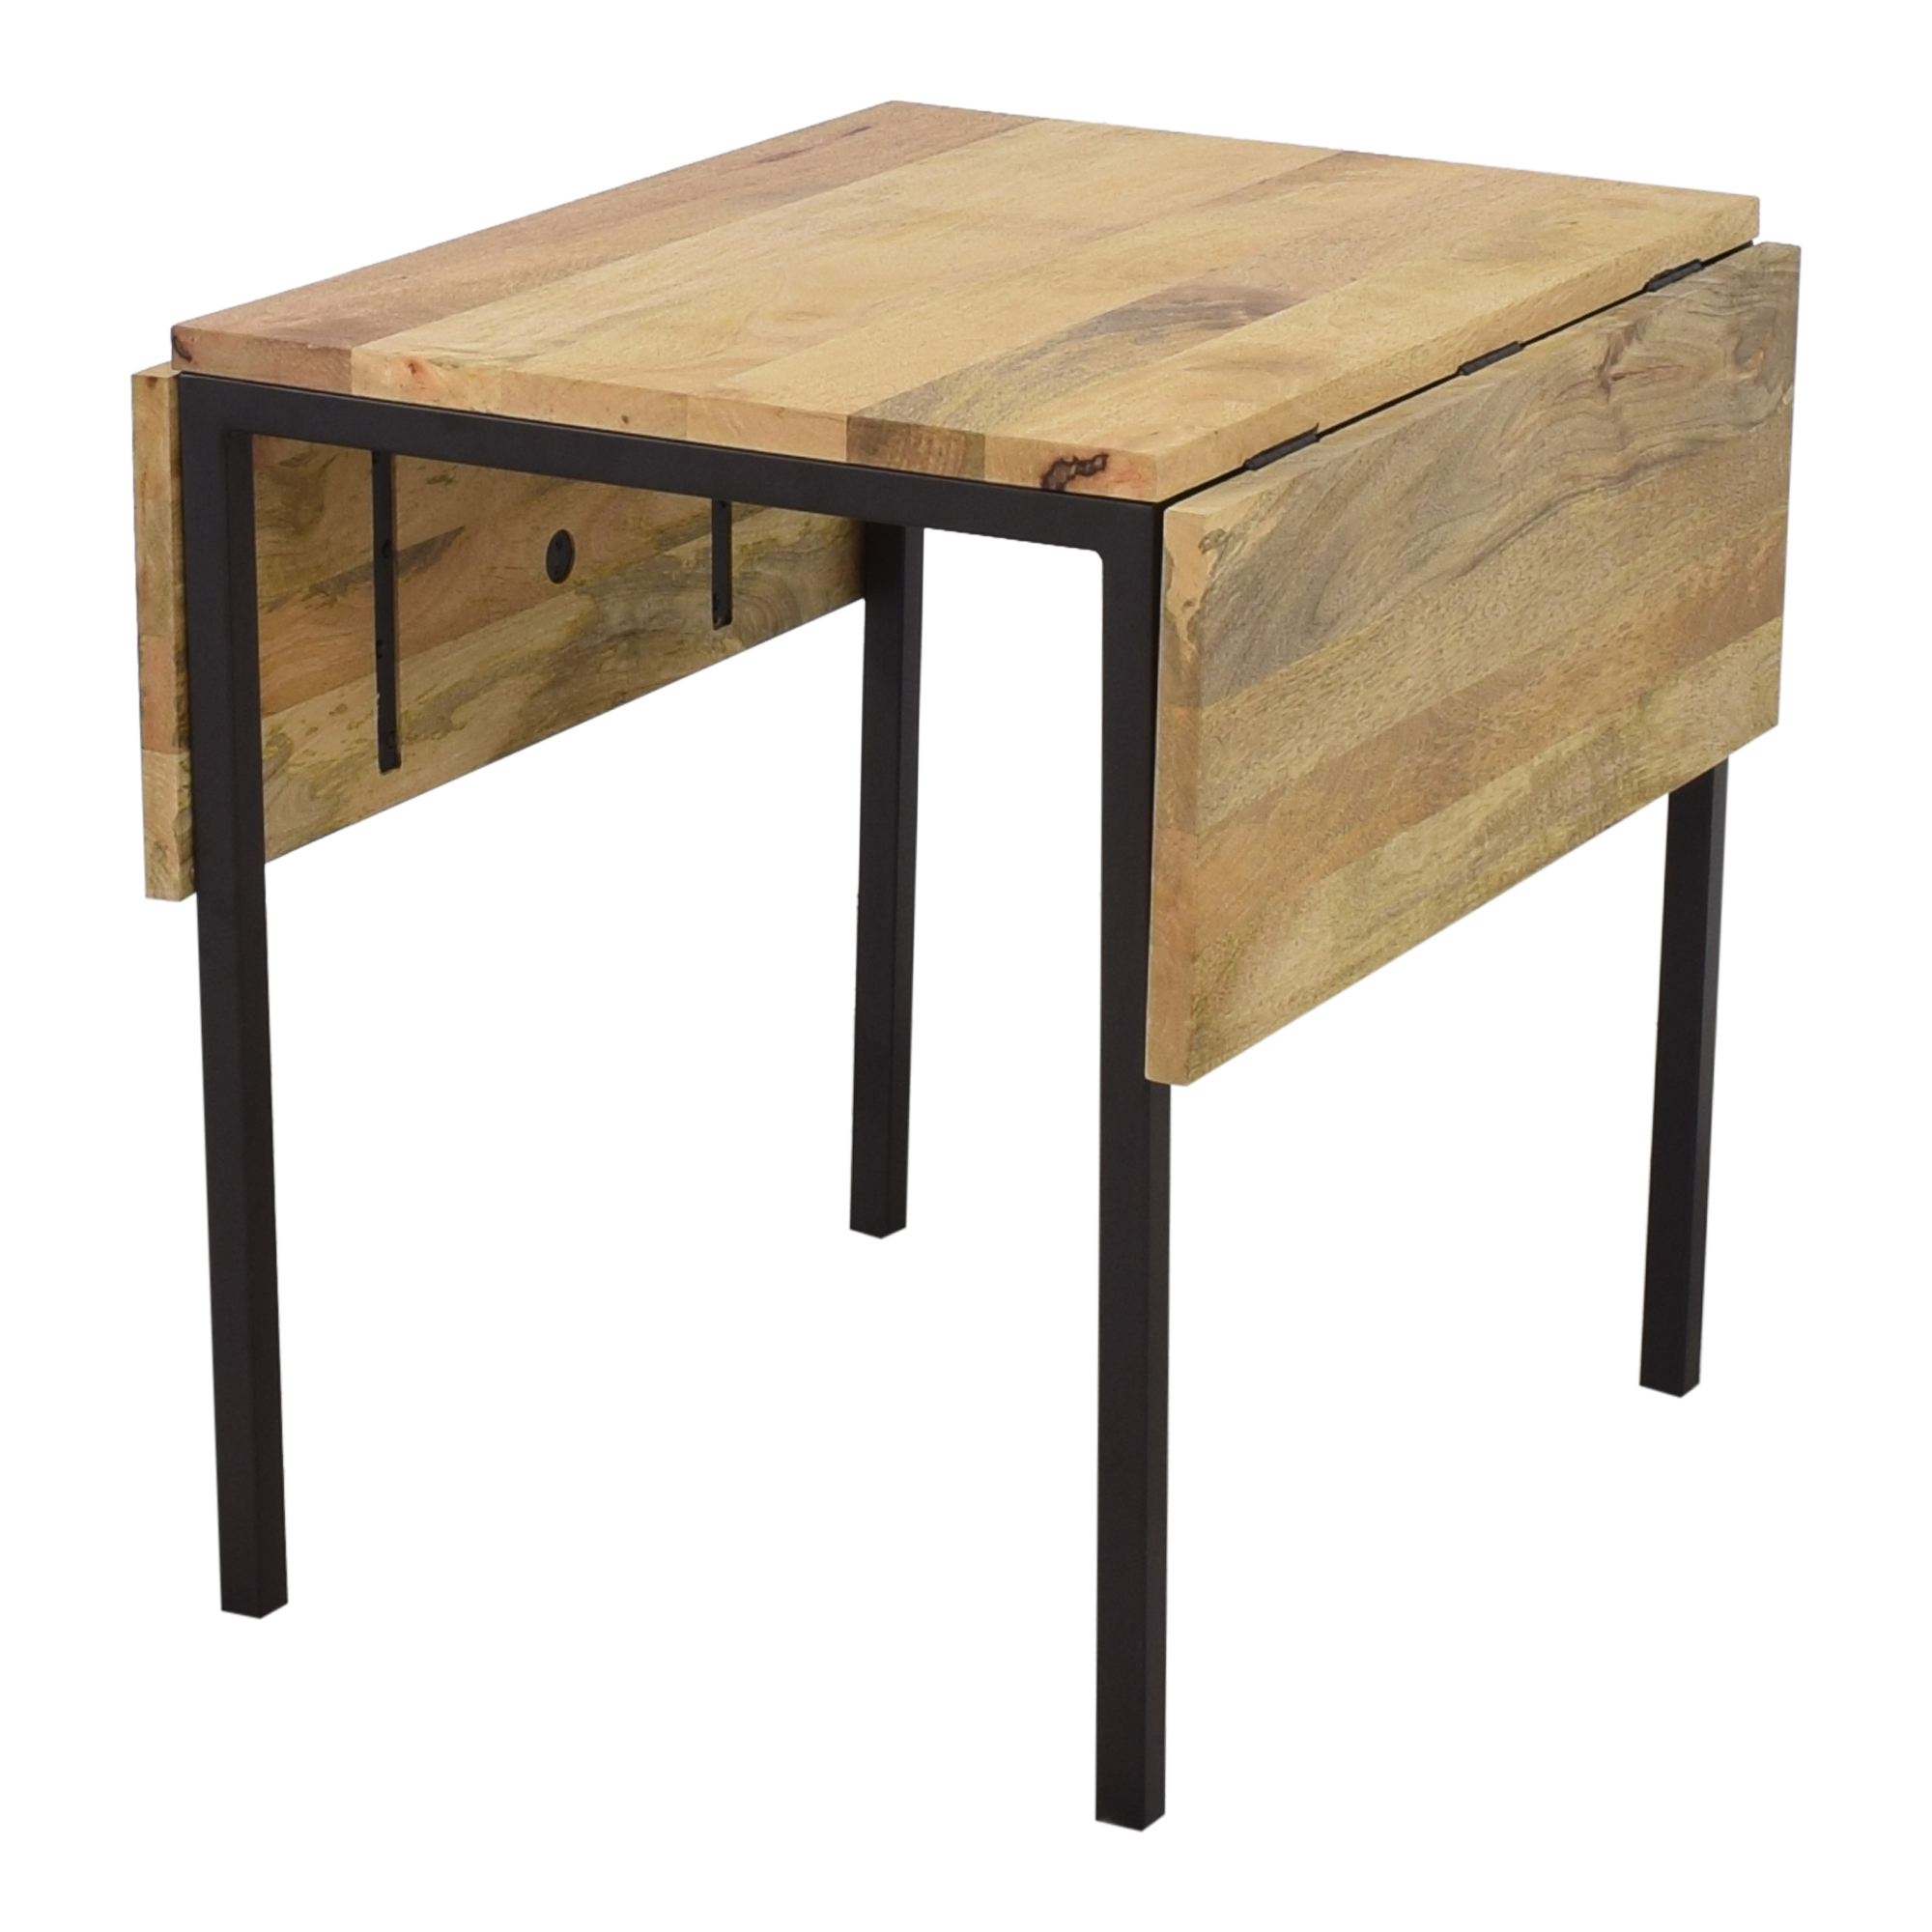 West Elm West Elm Box Frame Drop Leaf Dining Table on sale